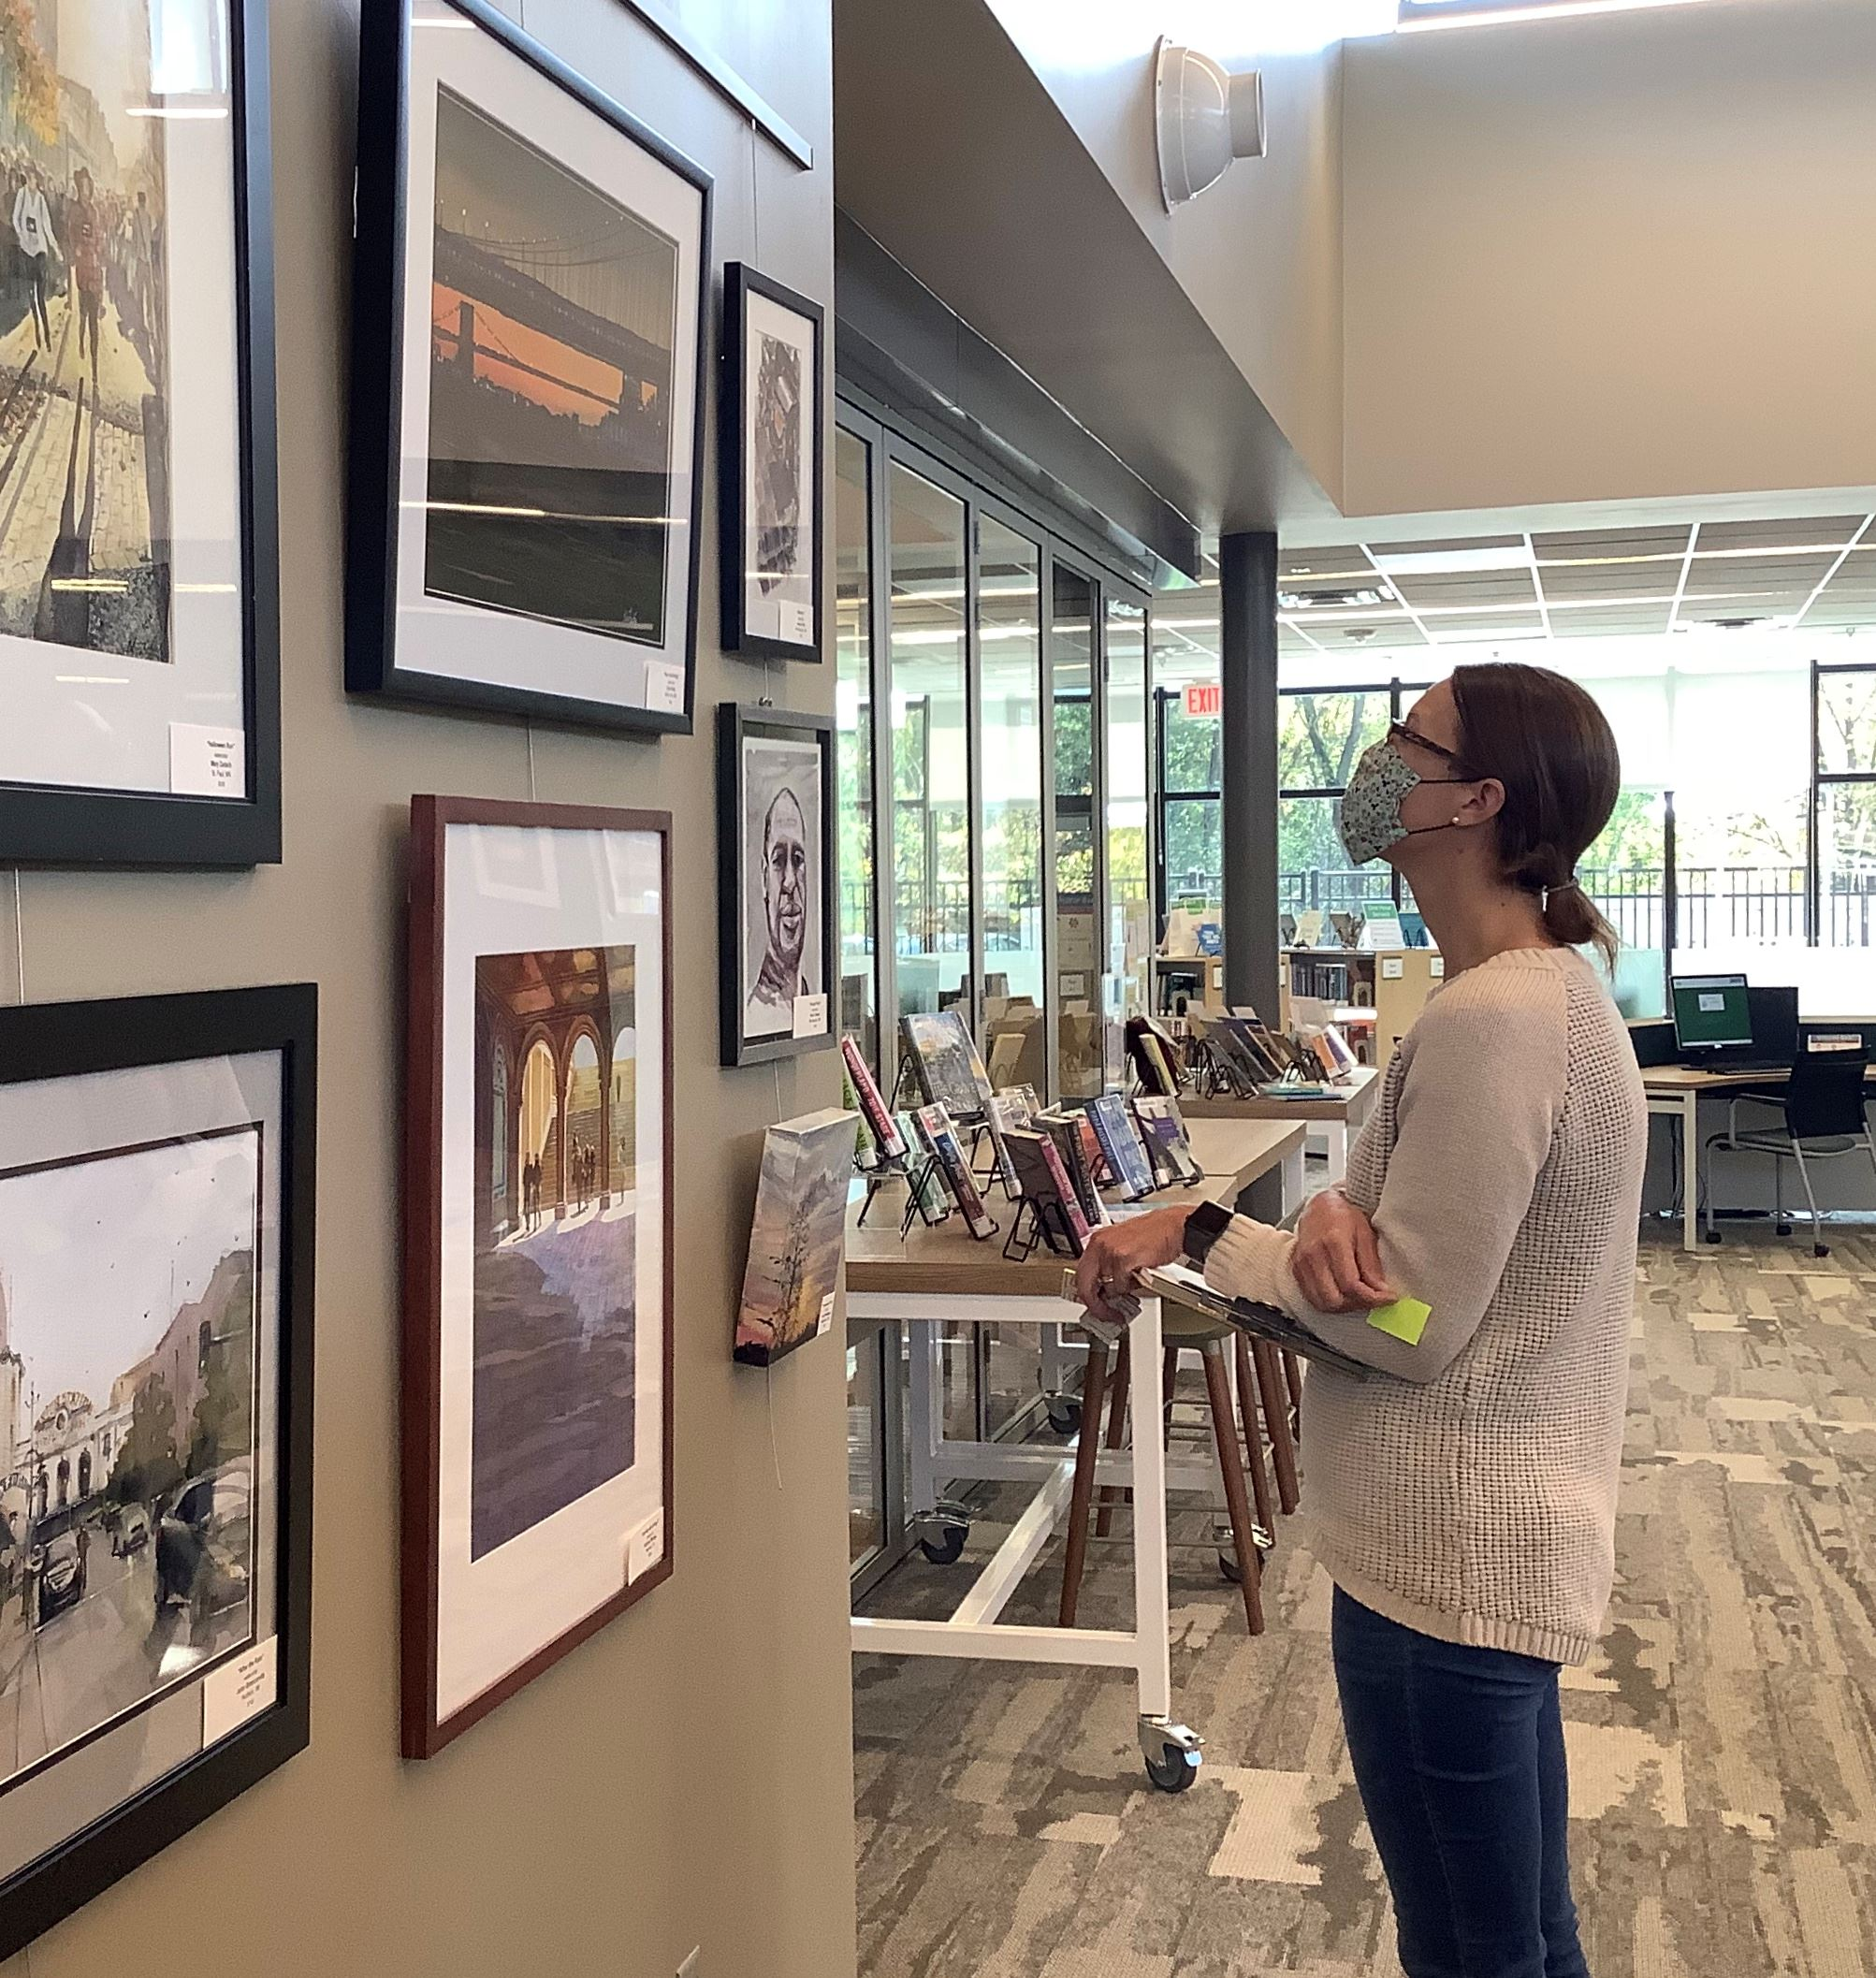 Juror viewing watercolor paintings at Wildwood LIbrary.